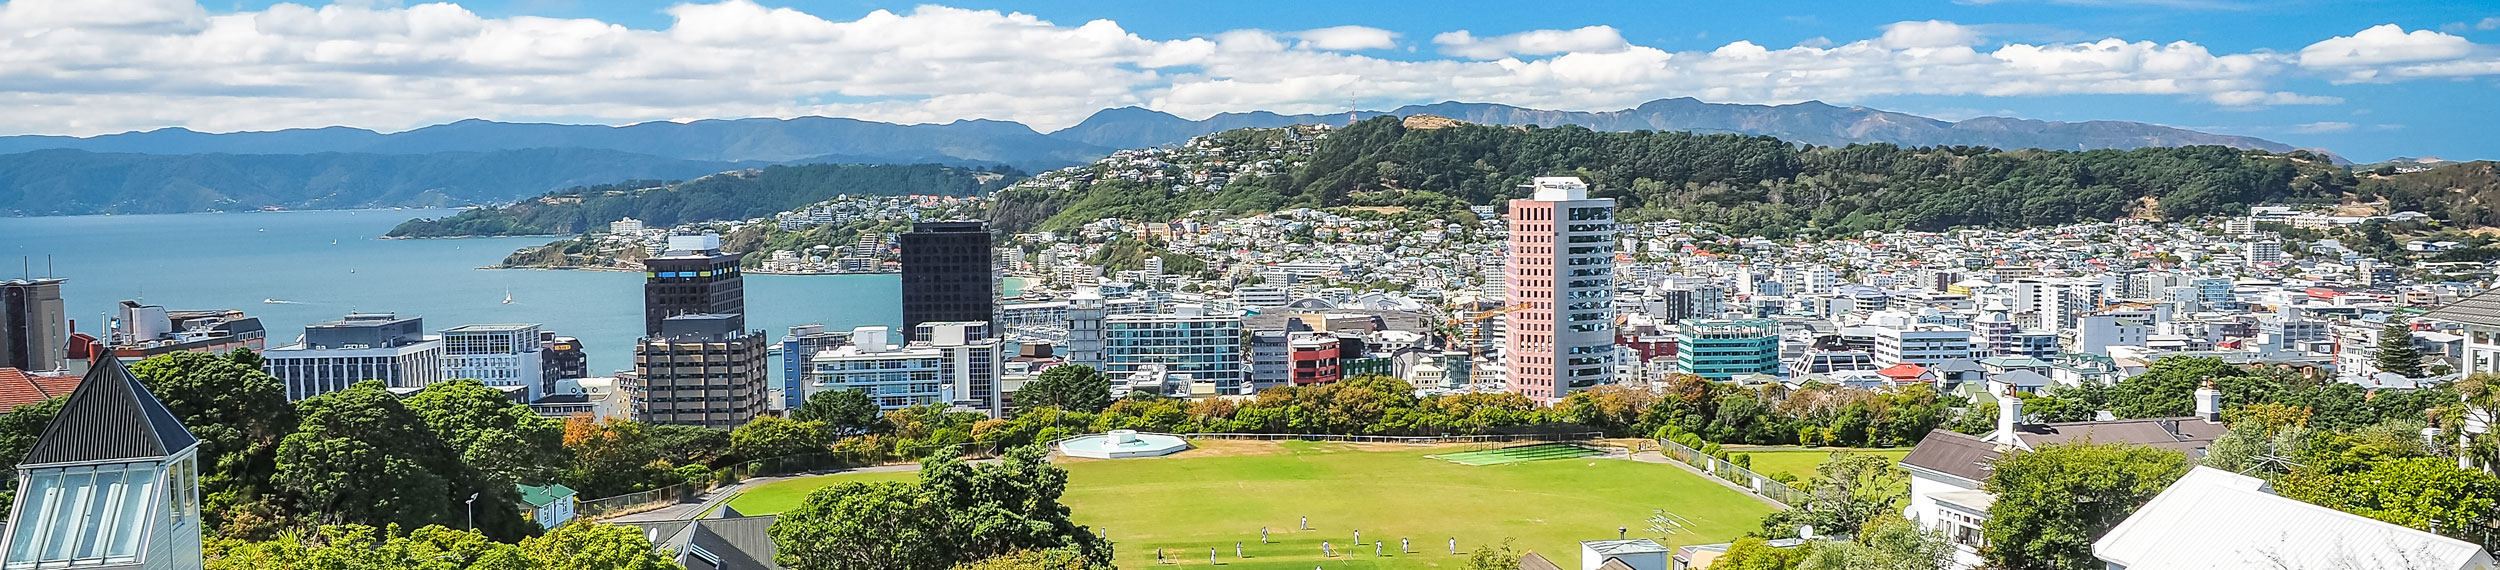 A view of the city with tall buildings, the water and a green lawn in Wellington, New Zealand.